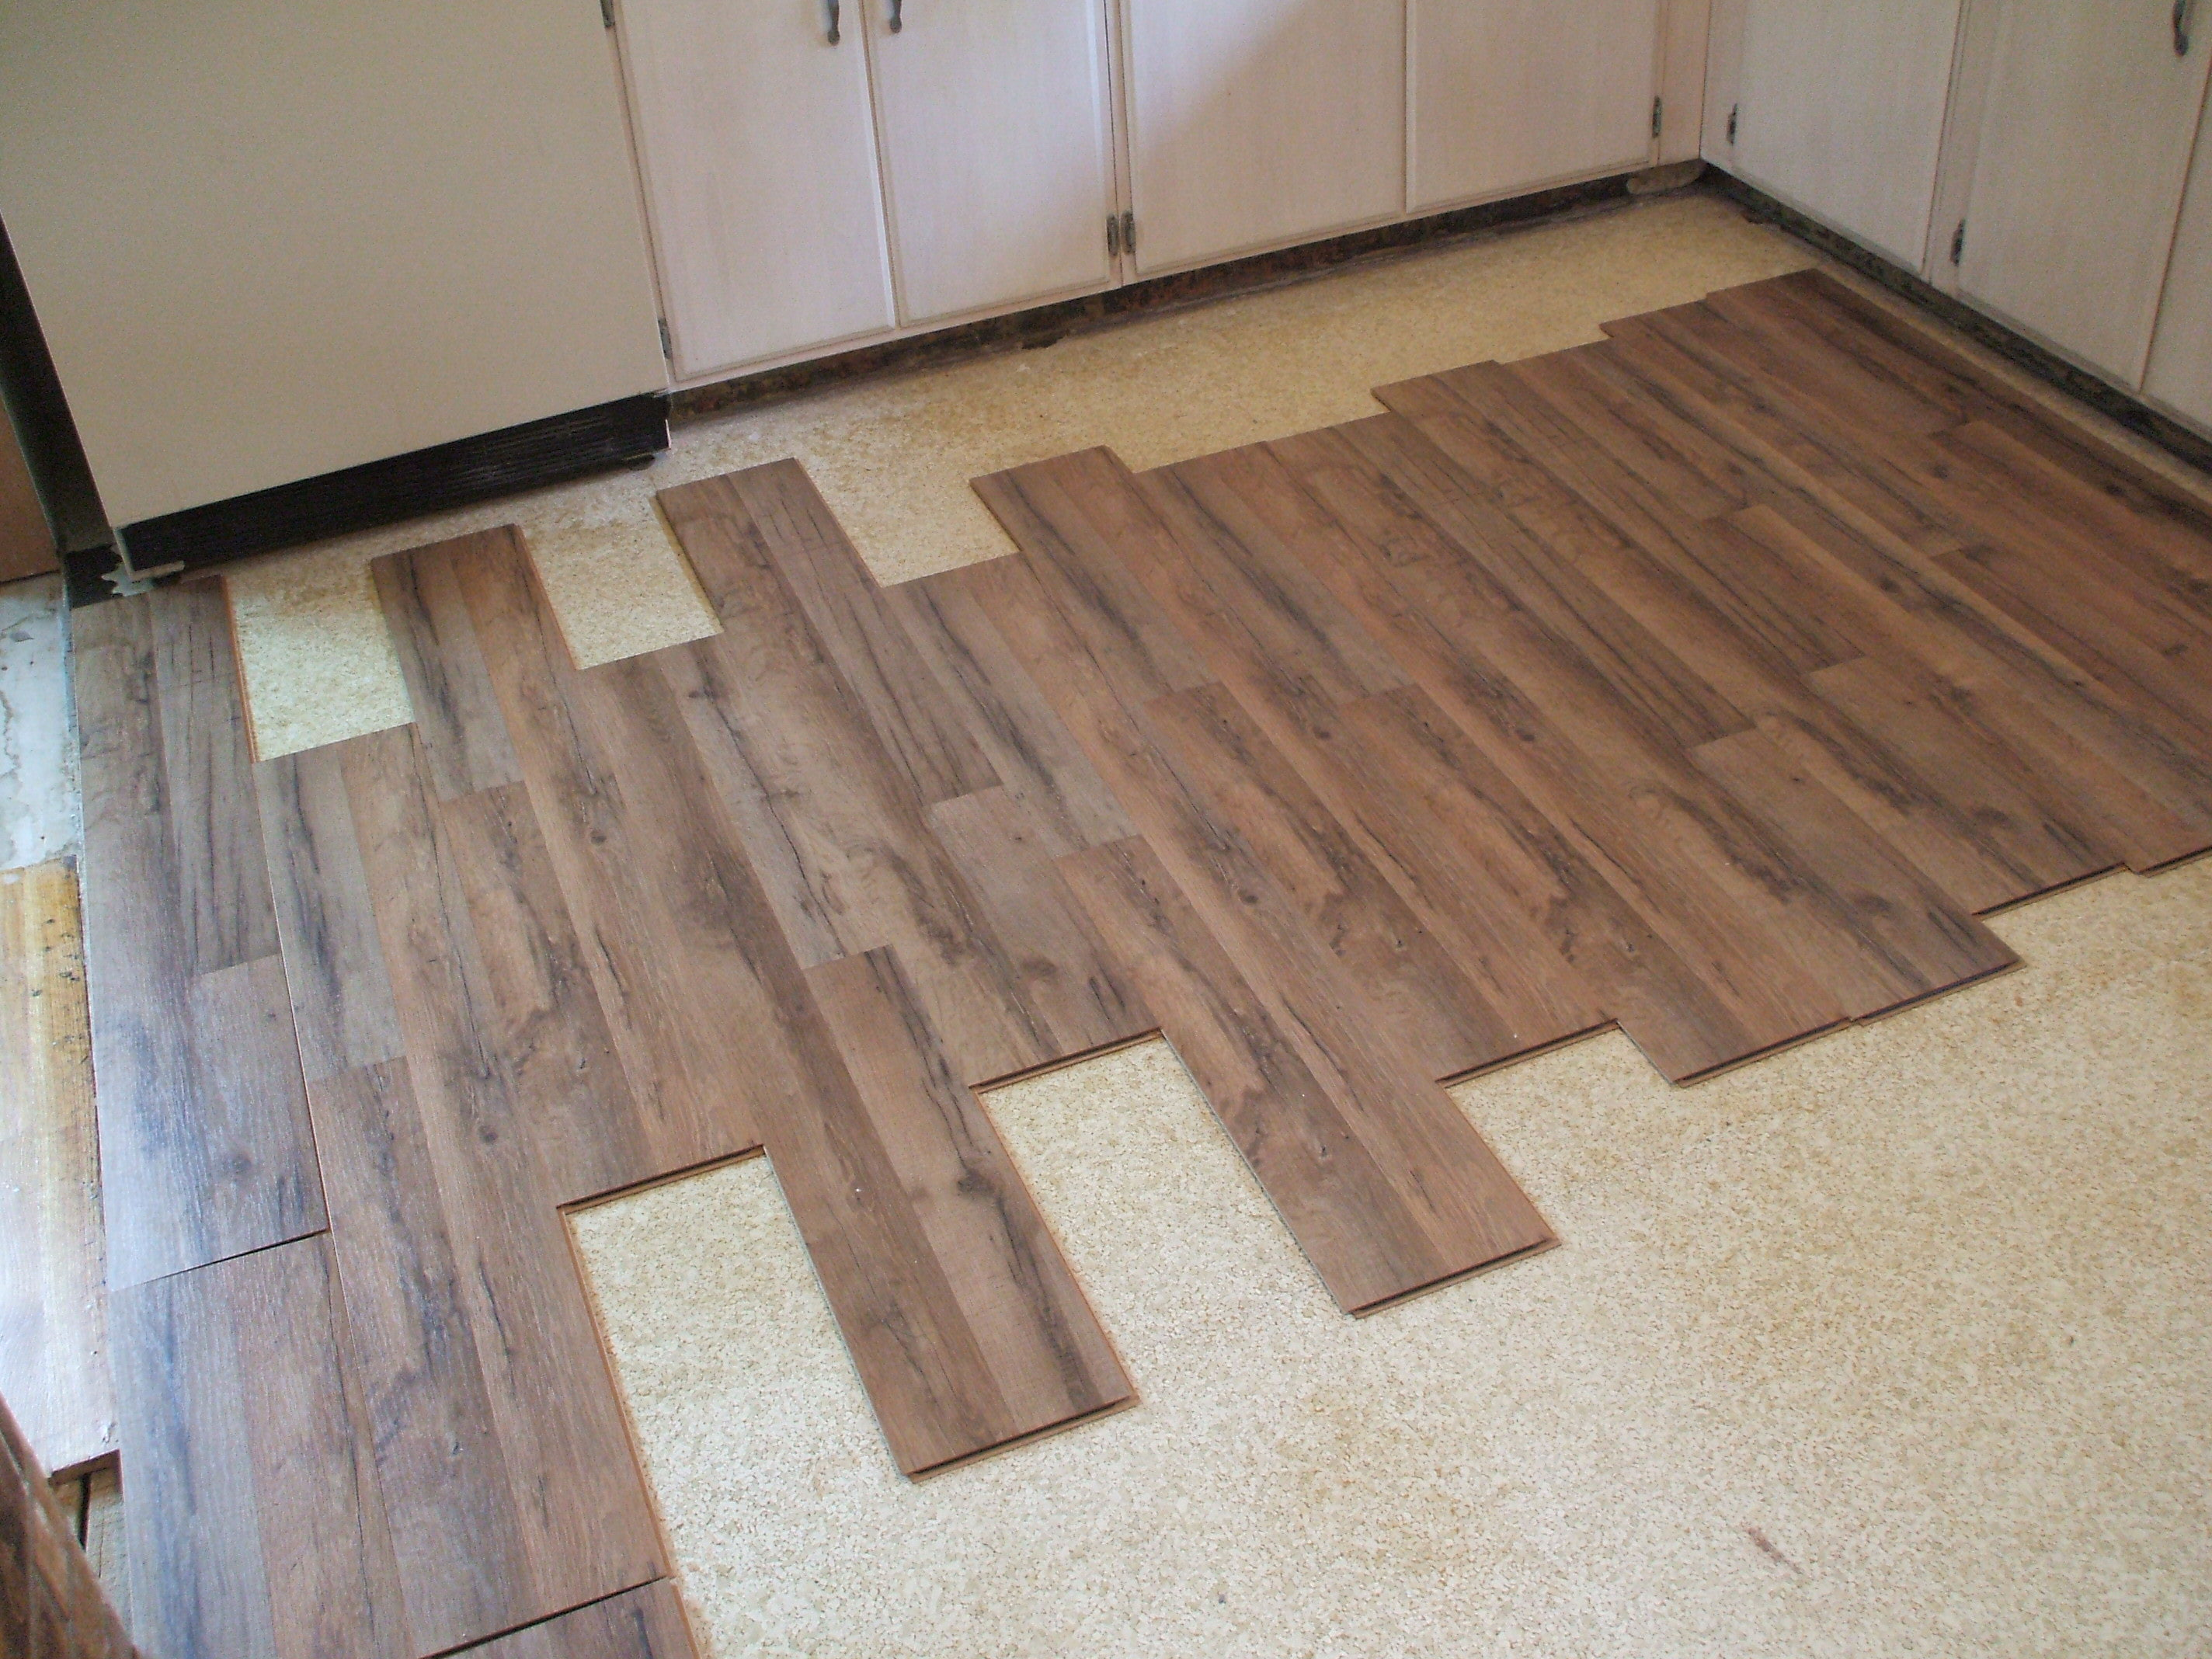 Bathroom And Kitchen Flooring Flooring Options For Your Rental Home Which Is Best